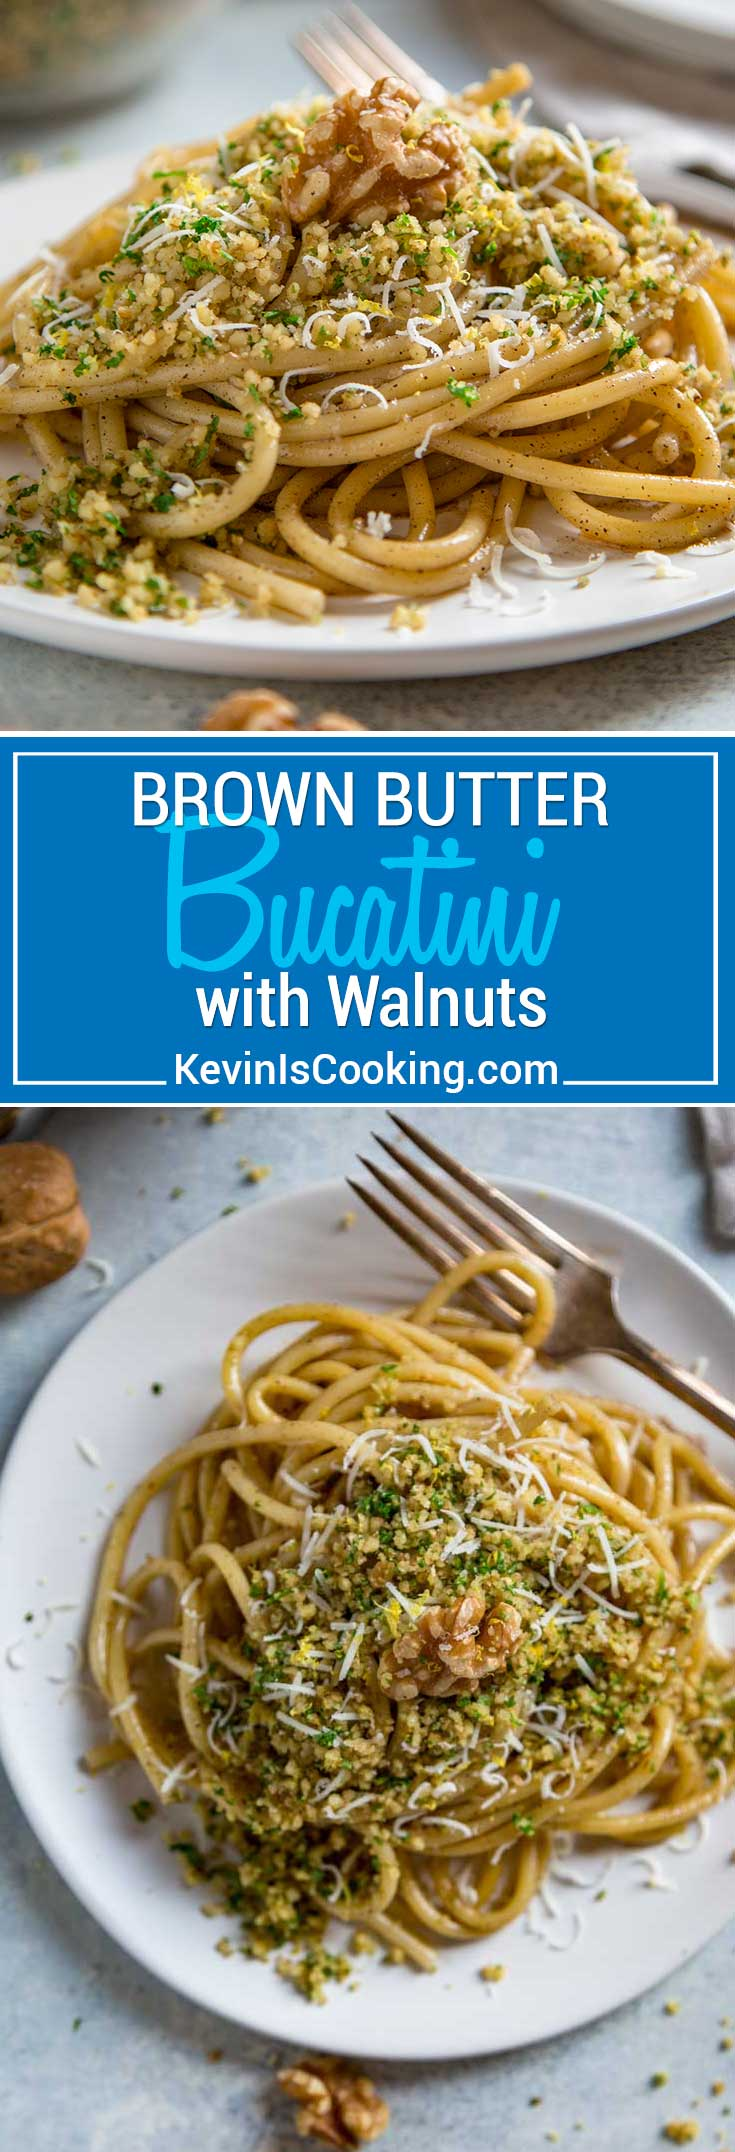 Brown Butter Bucatini with Walnuts - Kevin Is Cooking